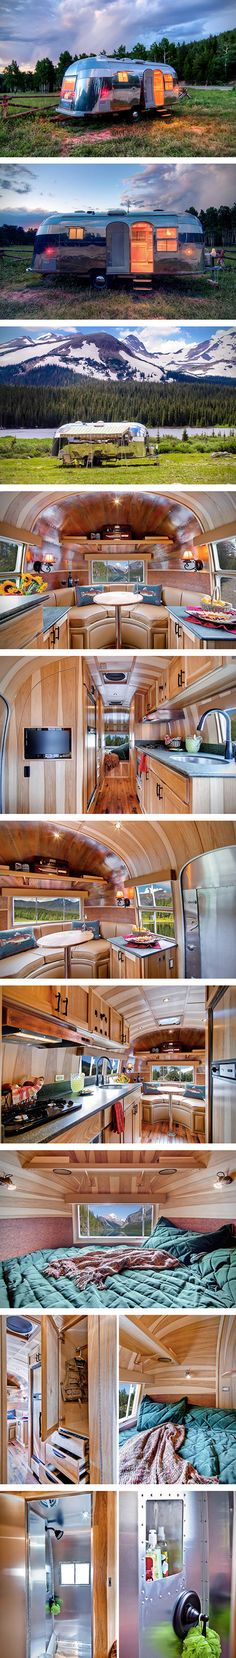 The average person might scoff at the thought of going cross-country in a trailer that was built in 1954, but that all changes when you see this immaculately restored Airstream Flying Cloud. The crew at Timeless Travel Trailers has worked their magic on this onetime hunting and fishing lodge, and you don't have to be a Baby Boomer to find the whole thing pretty glorious. Wish it!